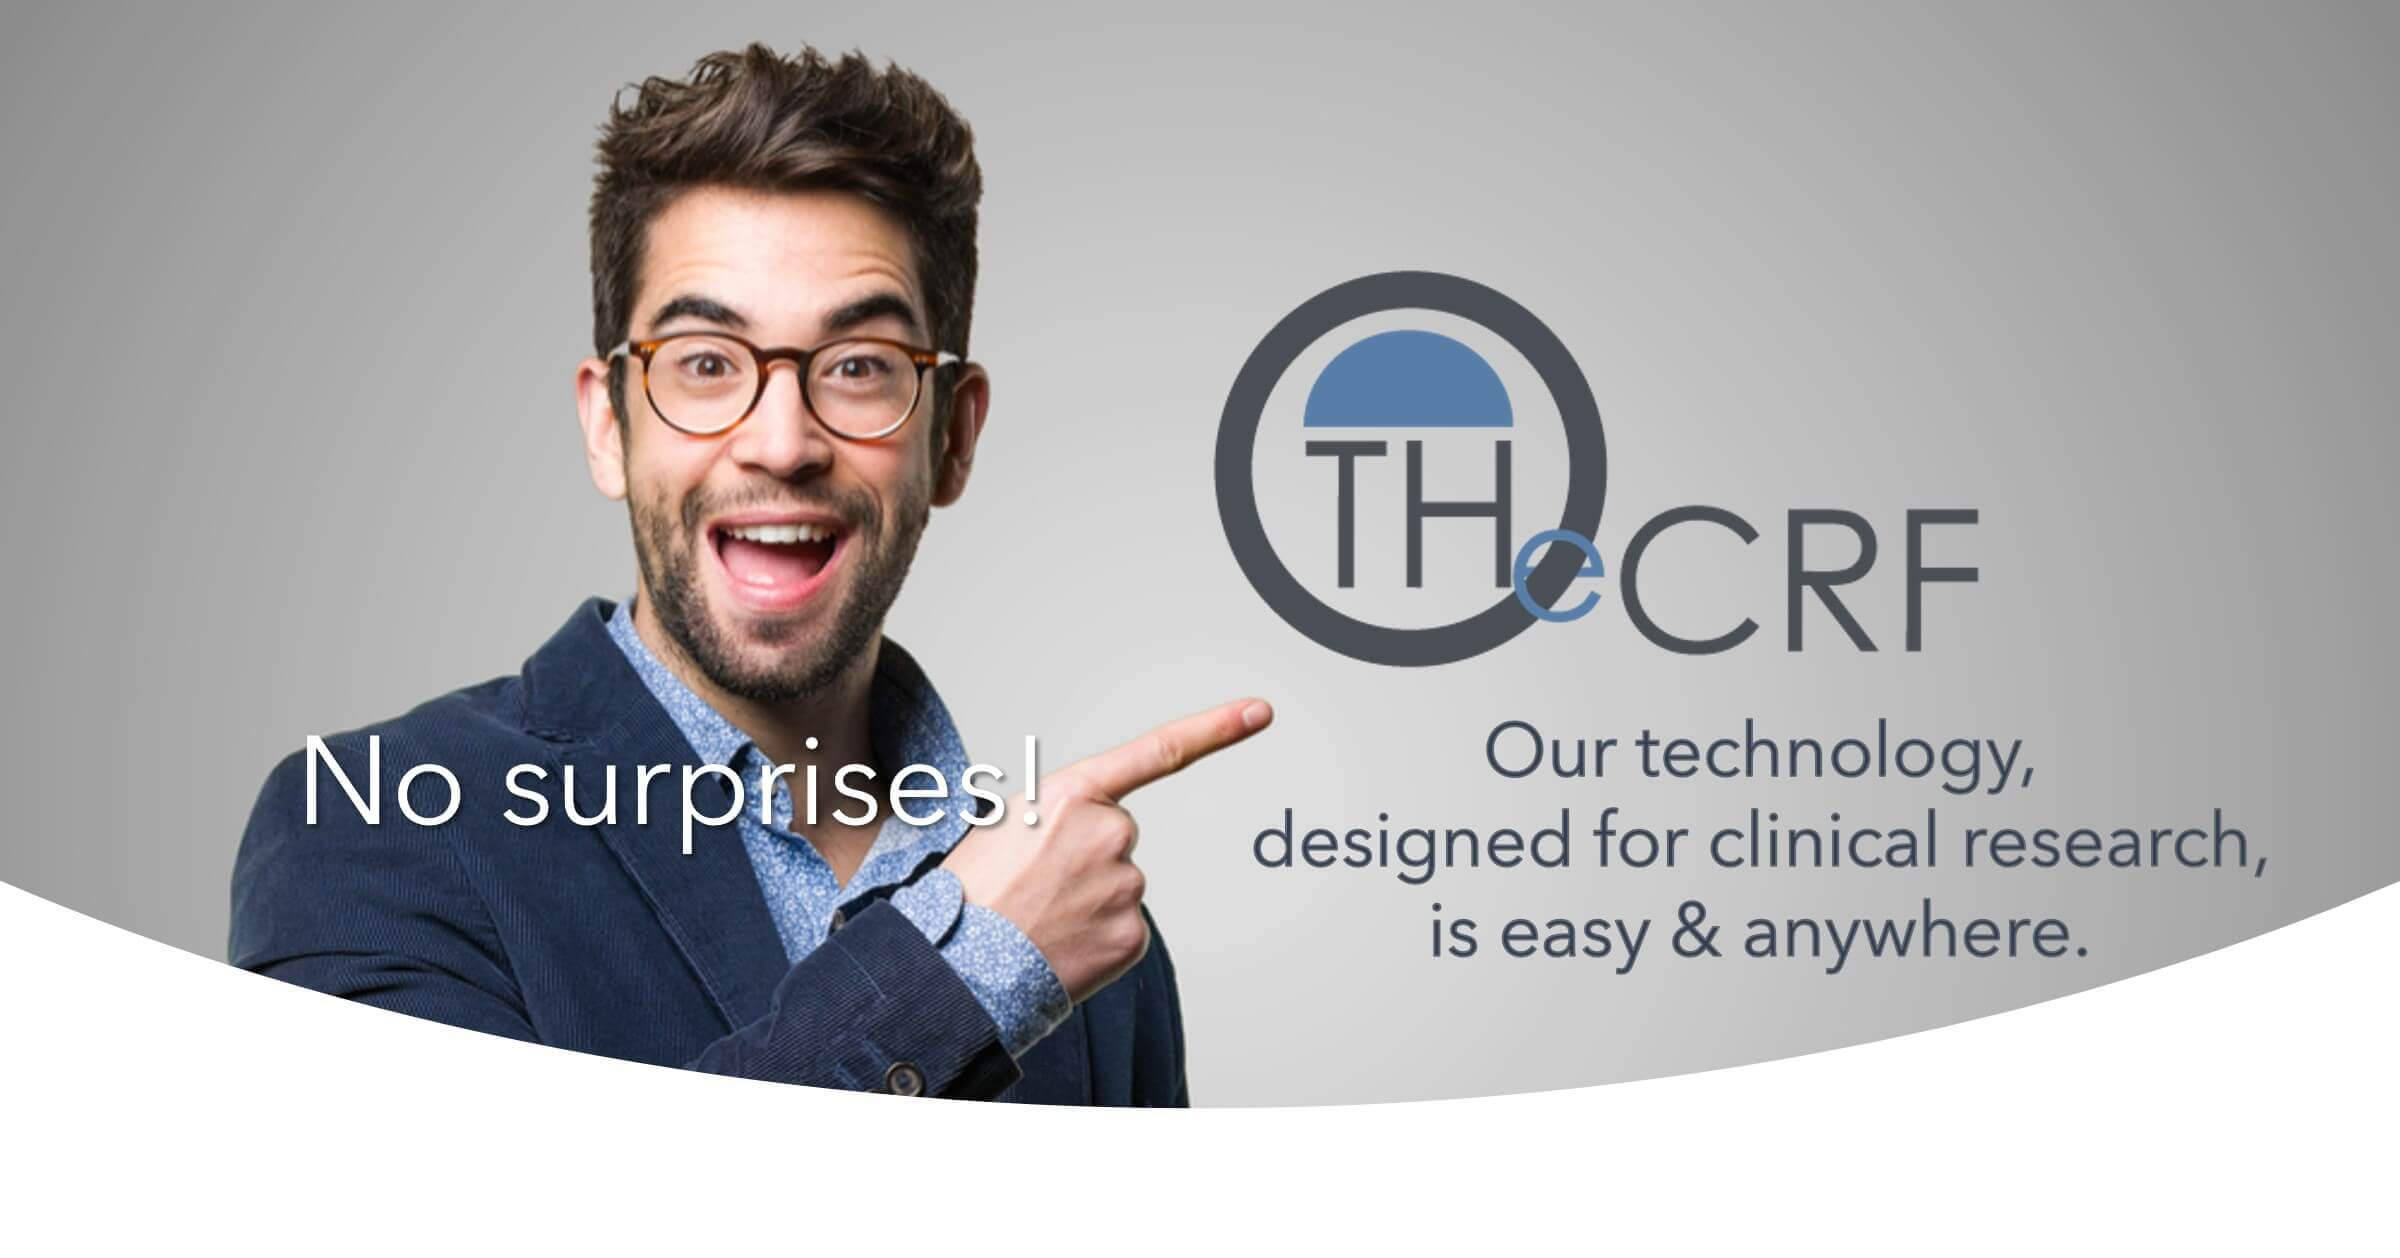 Get a THeCRF quotation